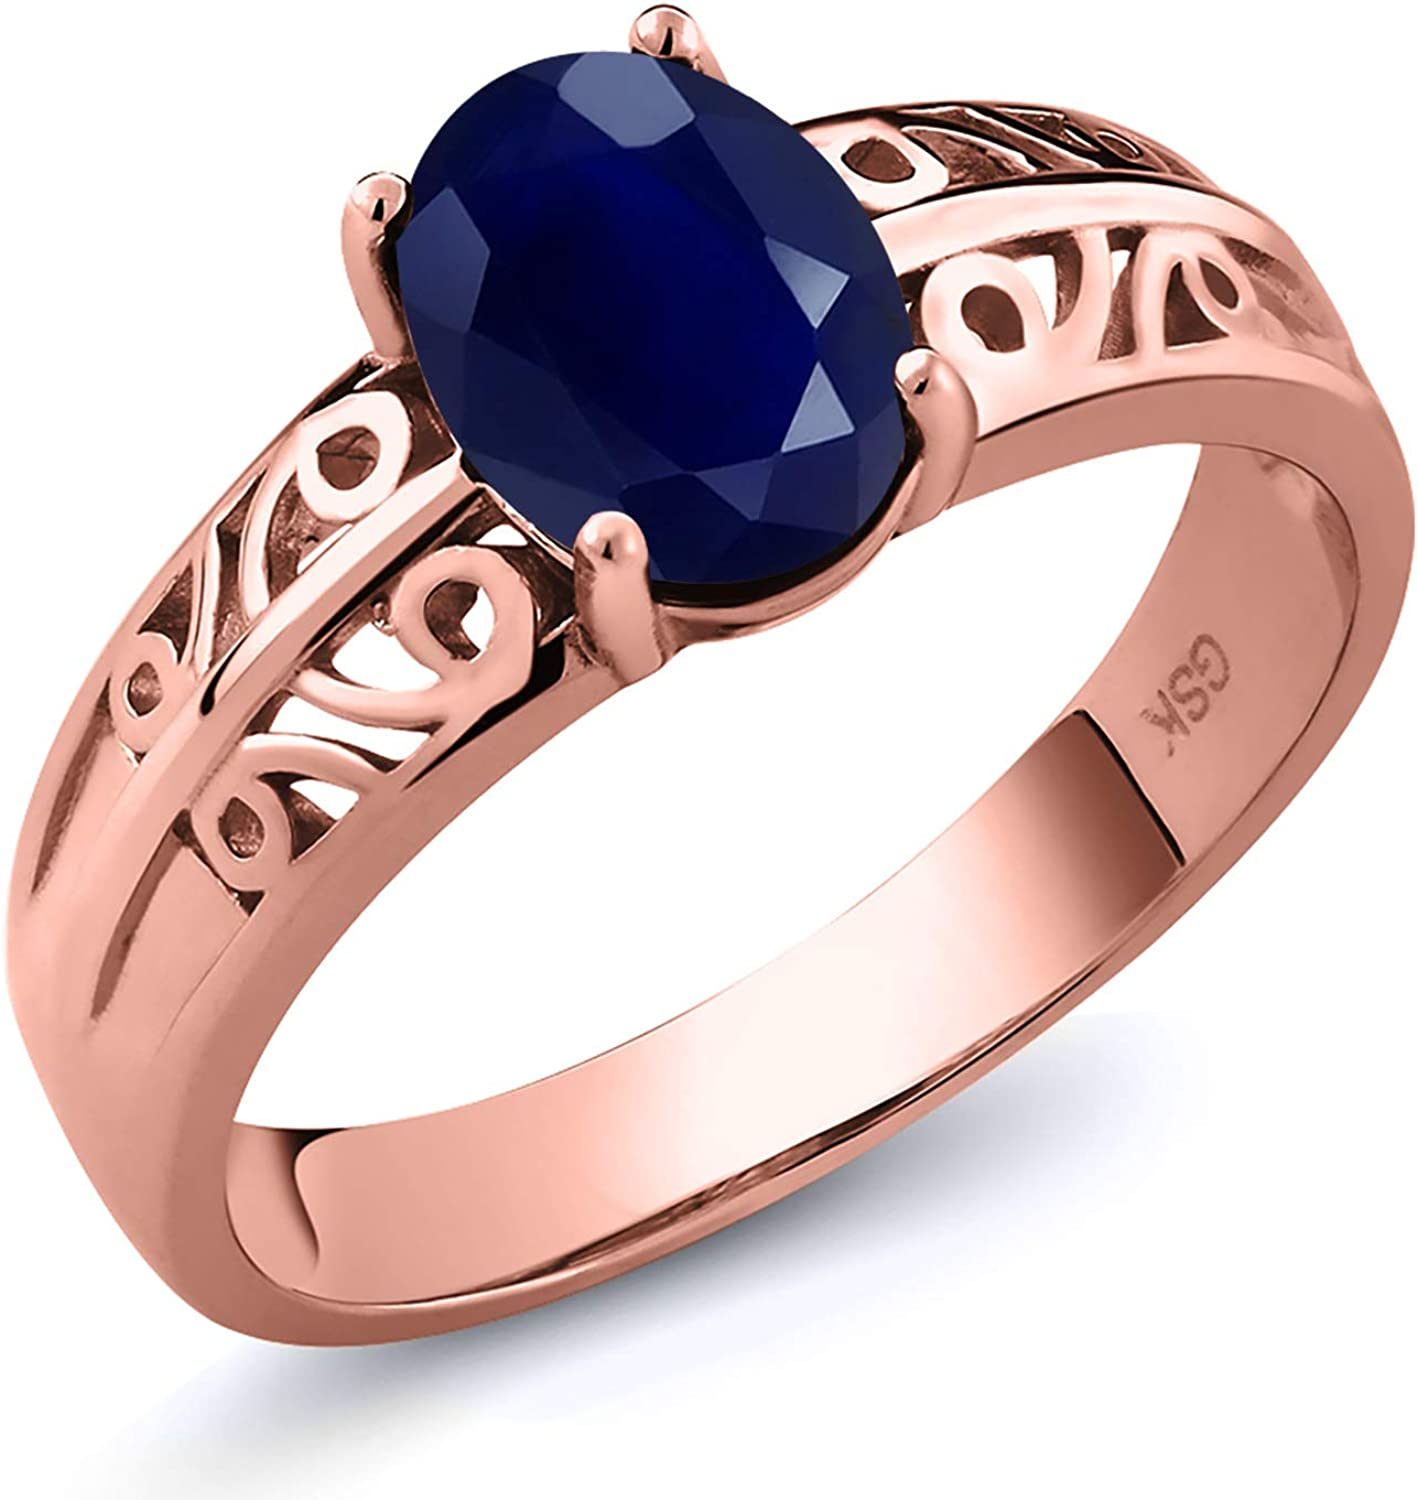 Baltimore Mall Gem Stone King 1.80 Ct Oval Blue Plated Rose 18K S Sapphire Gold Free Shipping New